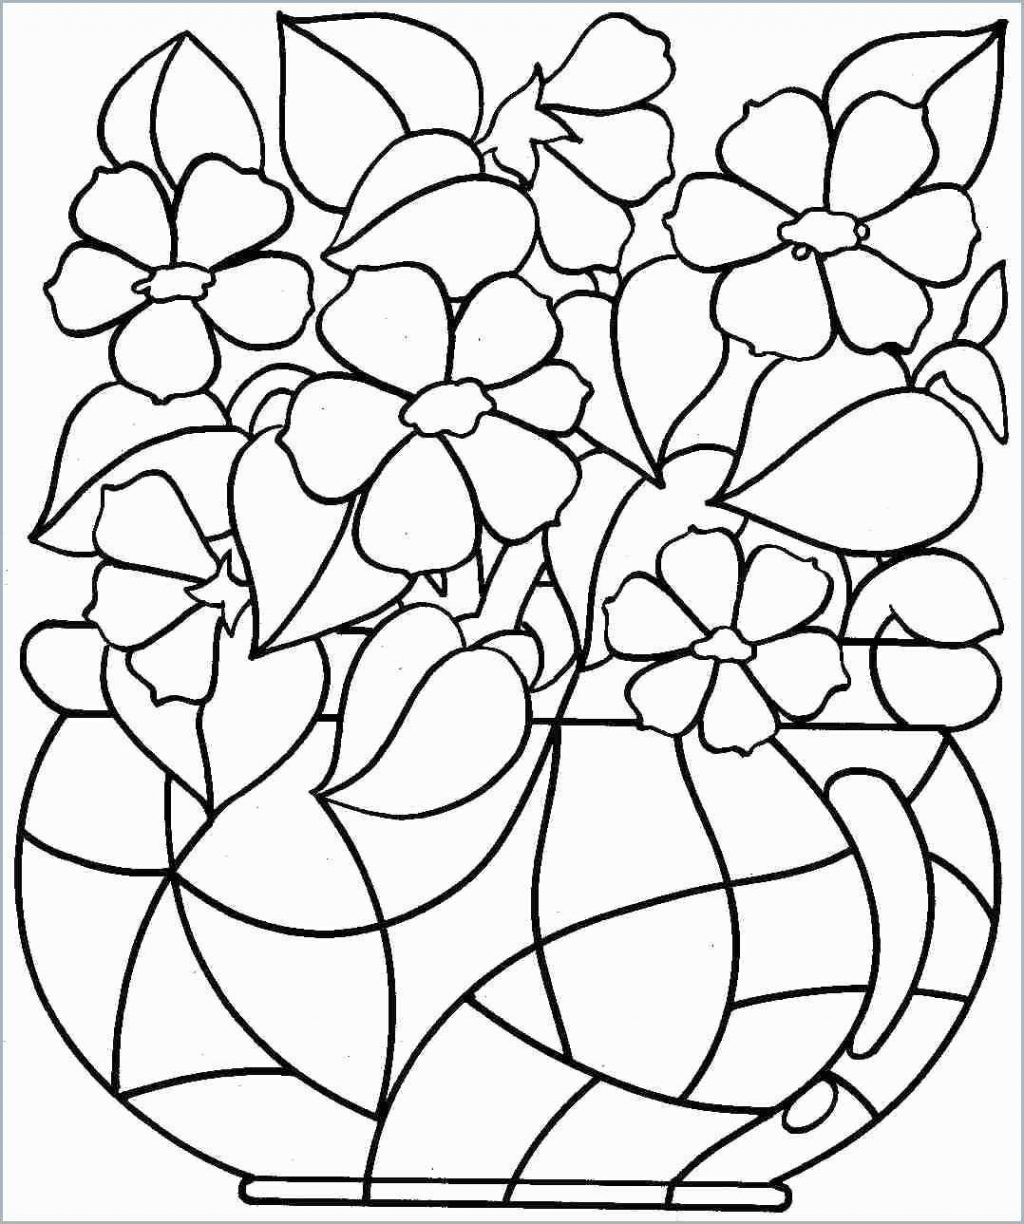 Coloring Pages ~ Free Printable Springing Pages Of Ships For Men - Free Printable Spring Coloring Pages For Adults